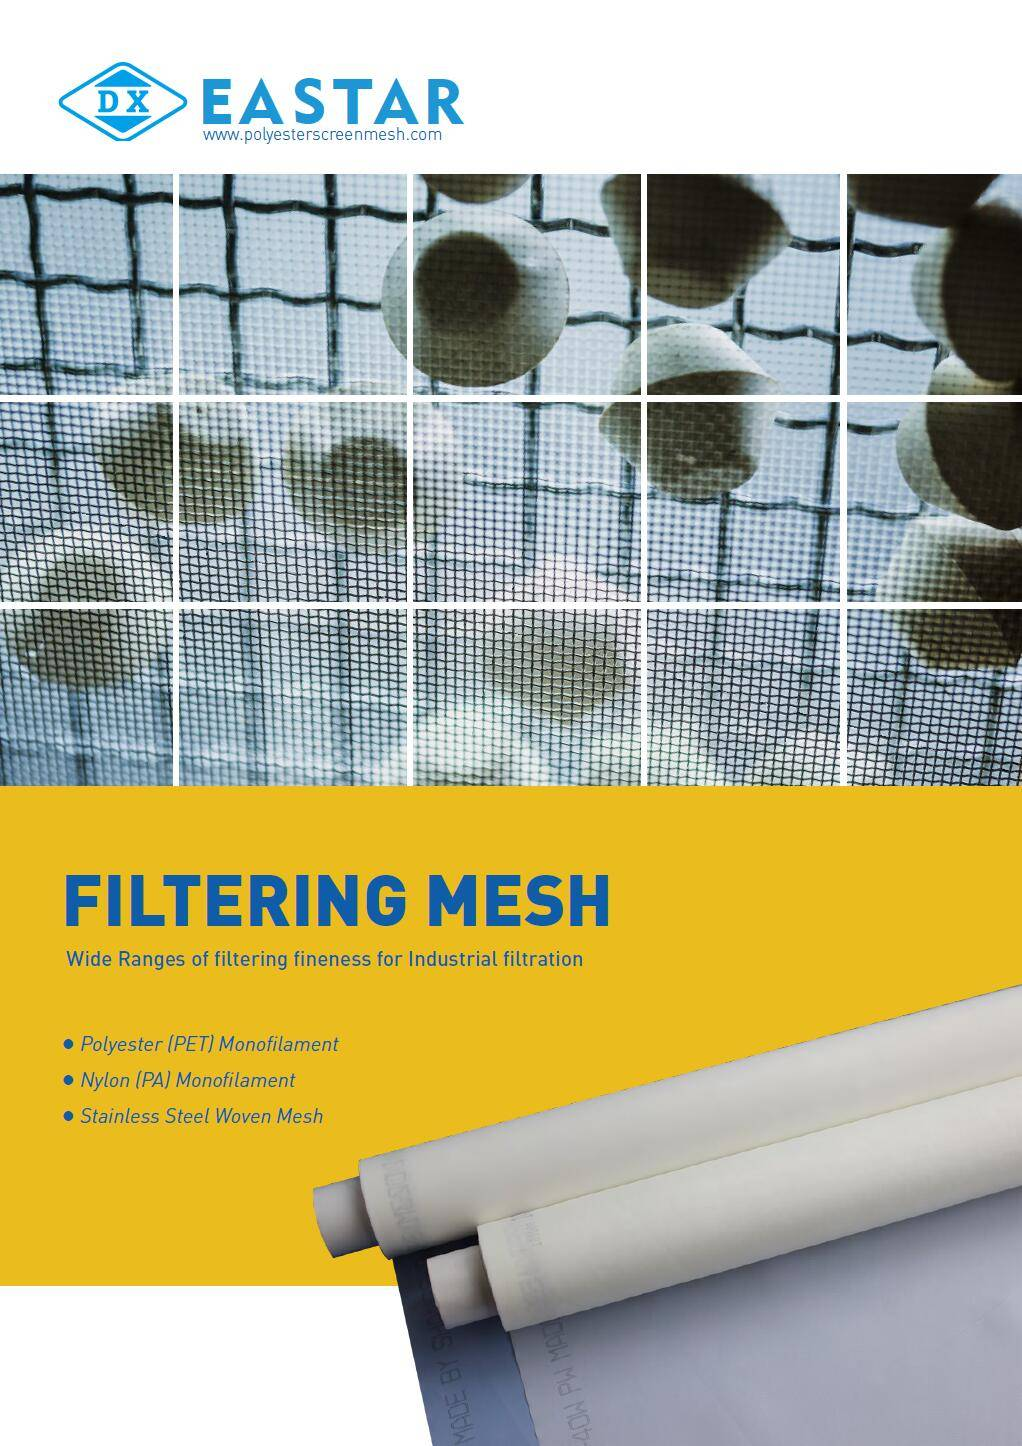 A bottom view of nylon sieving mesh.